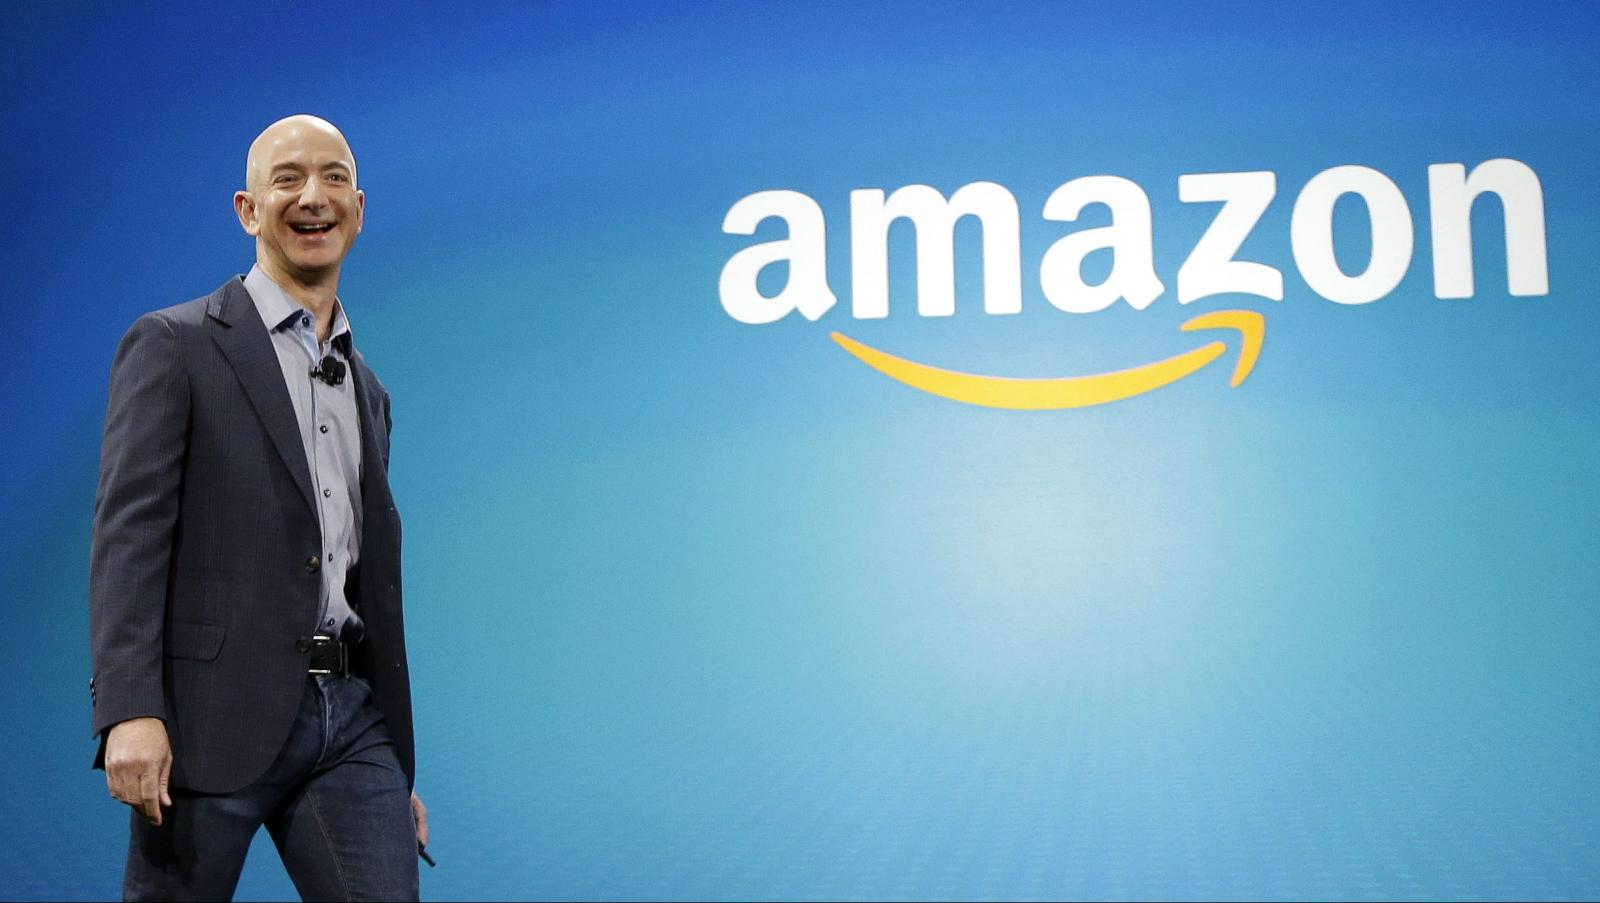 Amazon.com (AMZN) Stock May be Getting ready To A Nice Pop